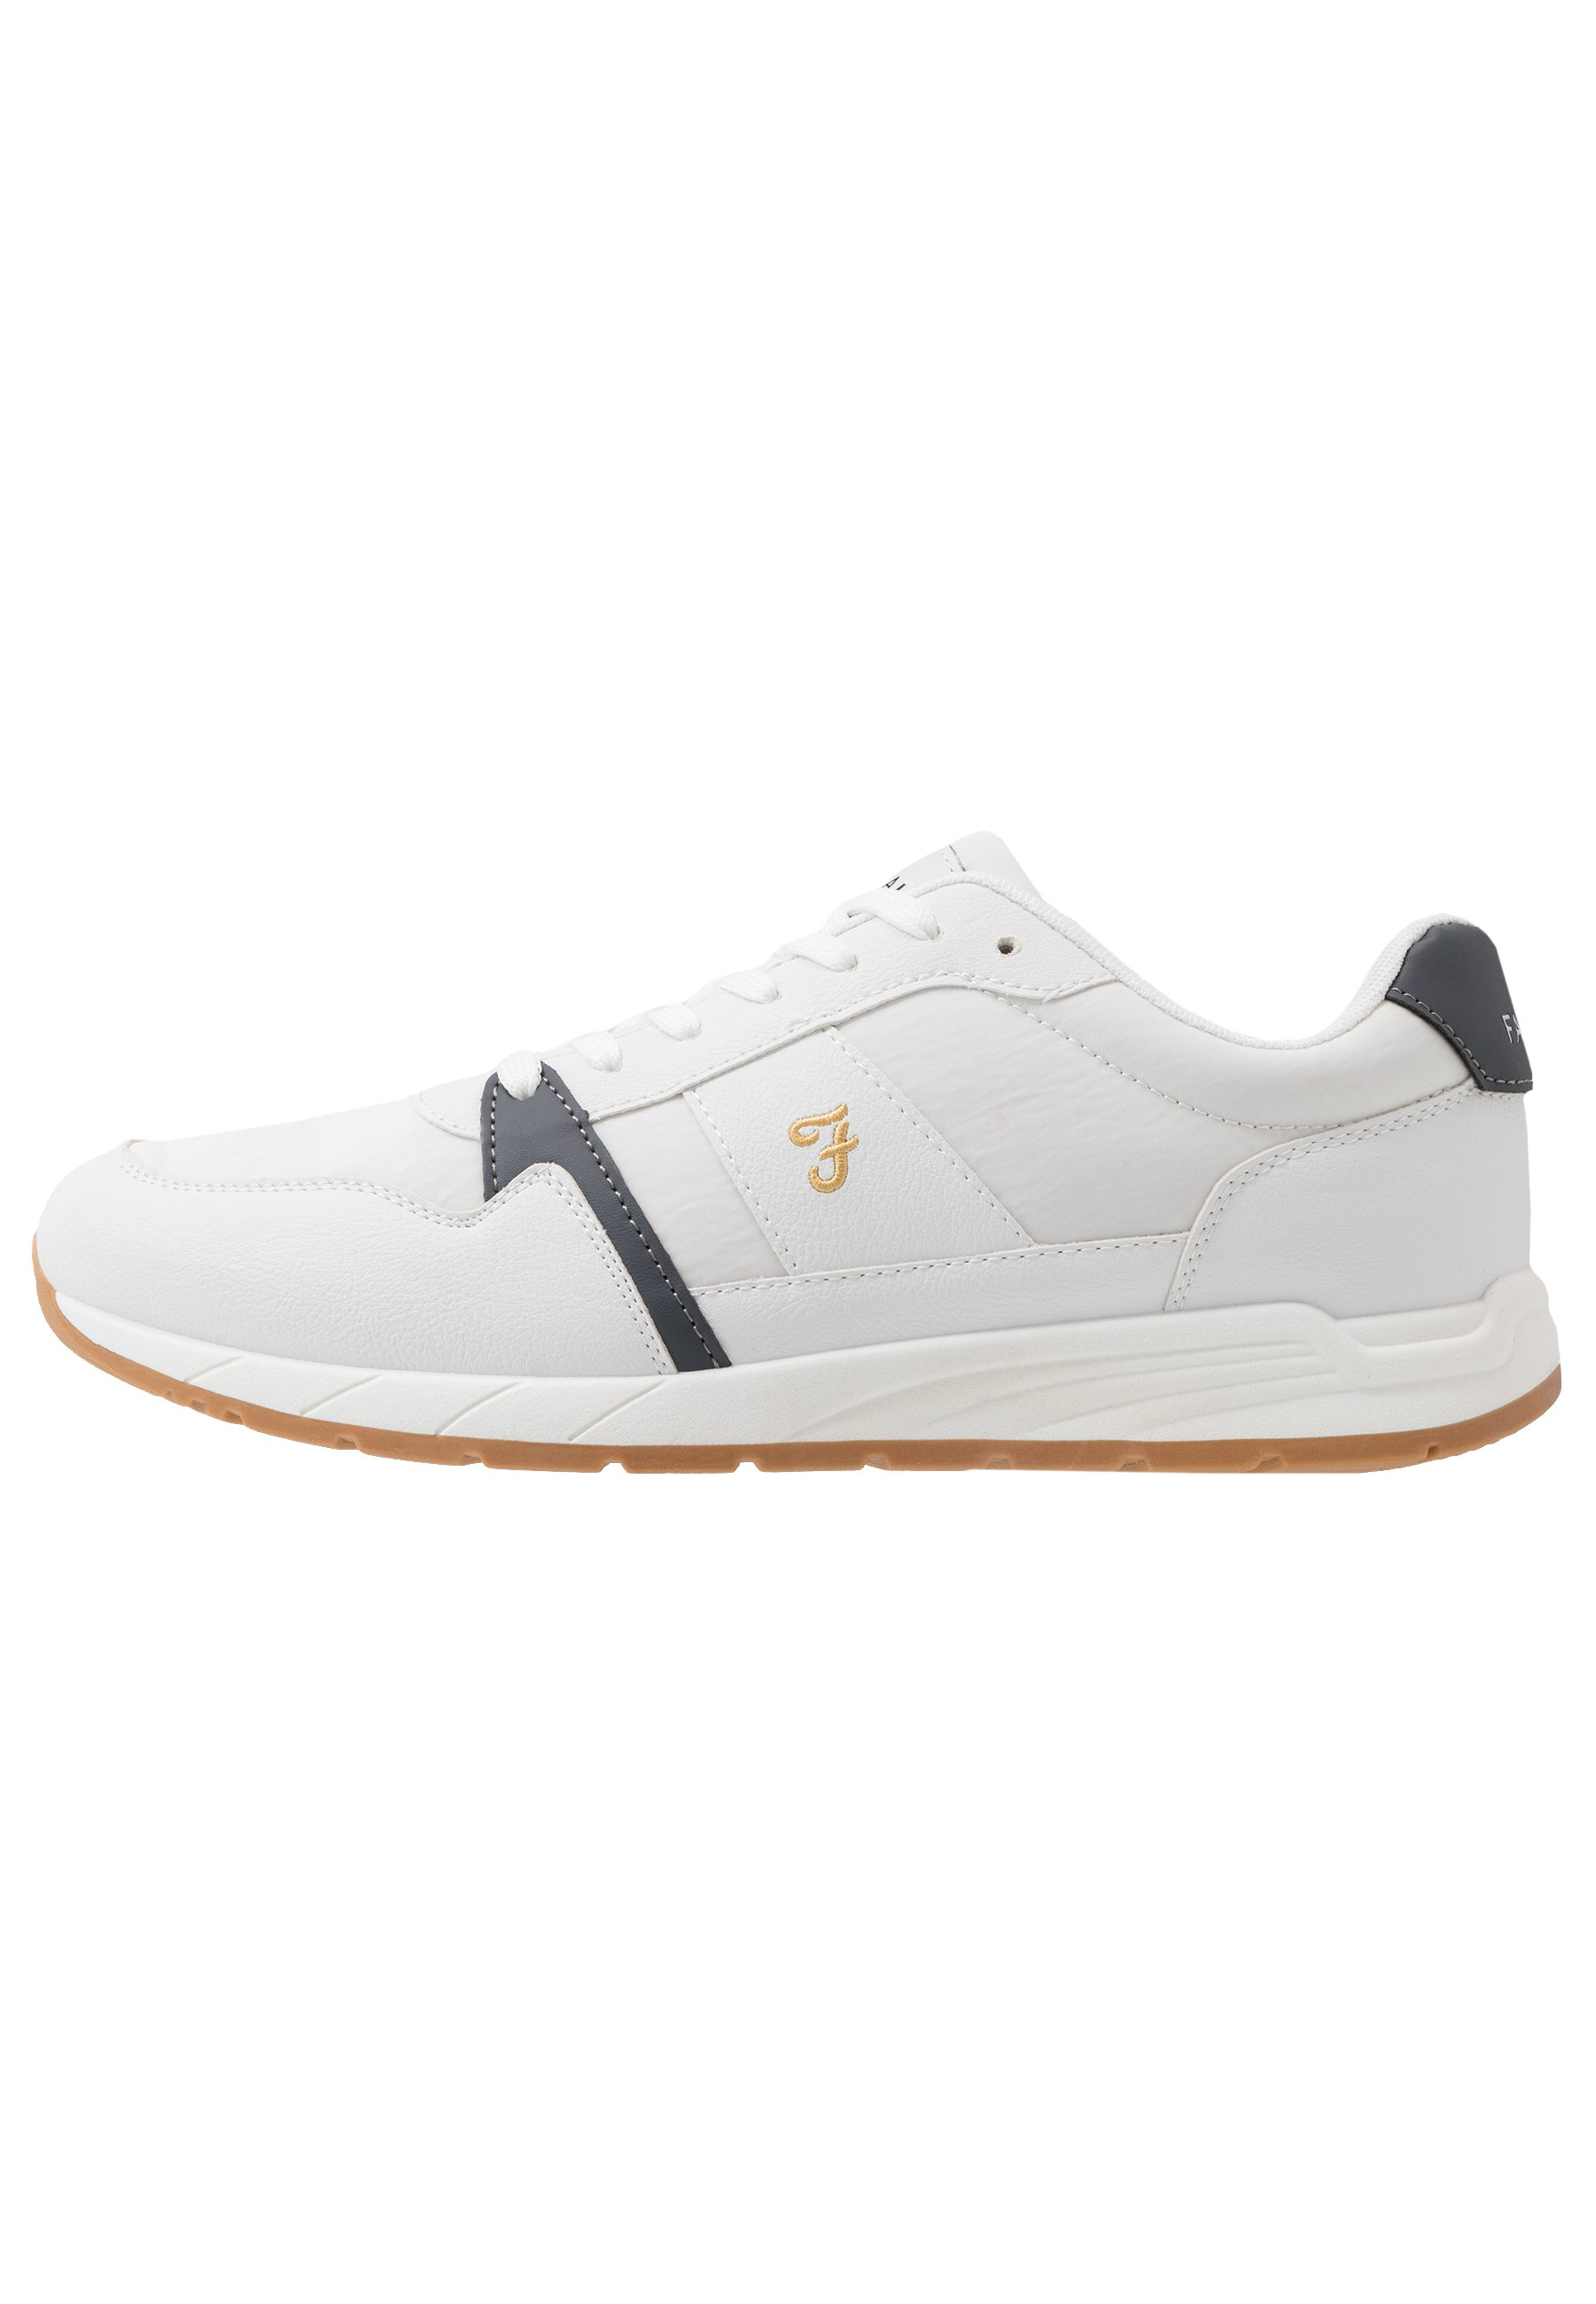 ADMIRAL Sneakers white